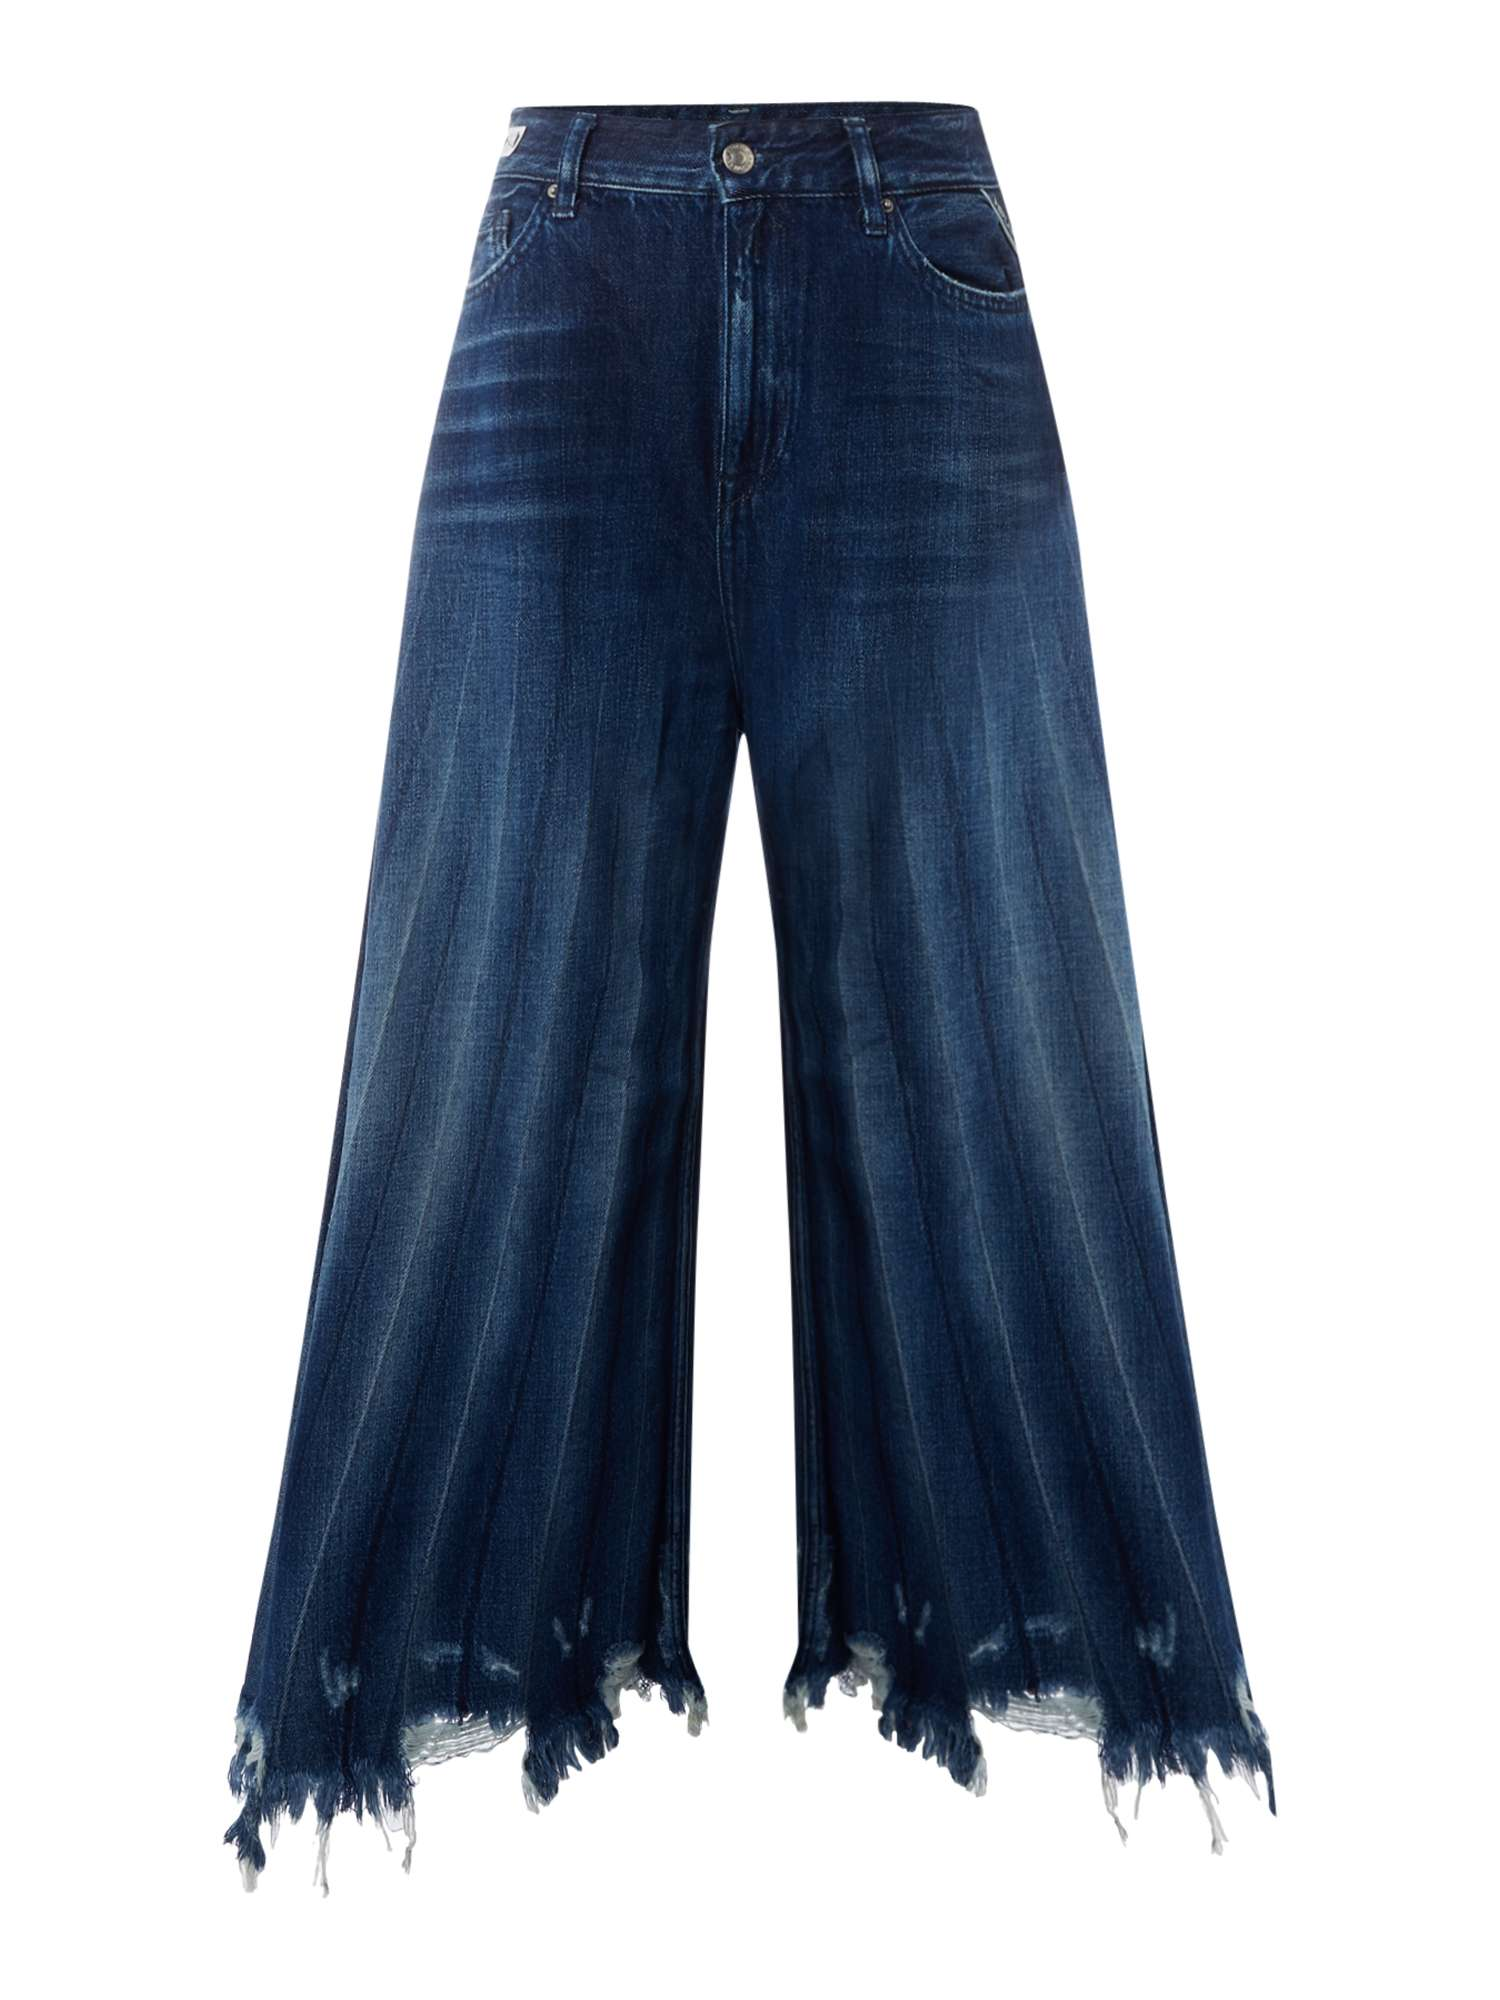 Fit Rea Rea Skirt Fit Skirt Replay Replay Jeans Jeans Replay Skirt Rea wA4qFq